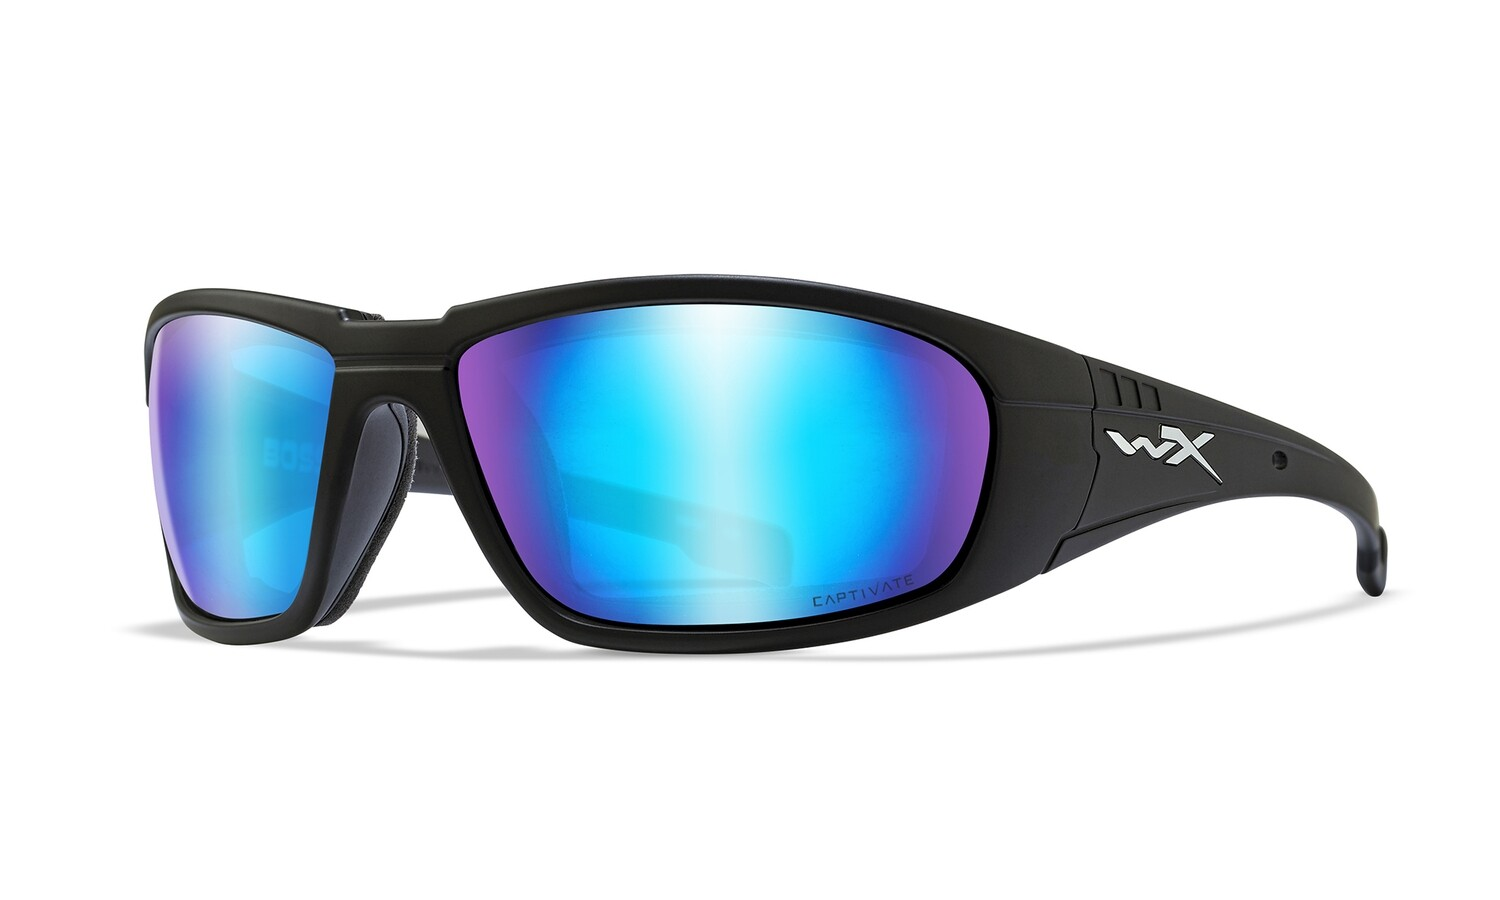 Wiley-X, CCBOS09, Cativate Polarized Blue Mirror/Matte Black